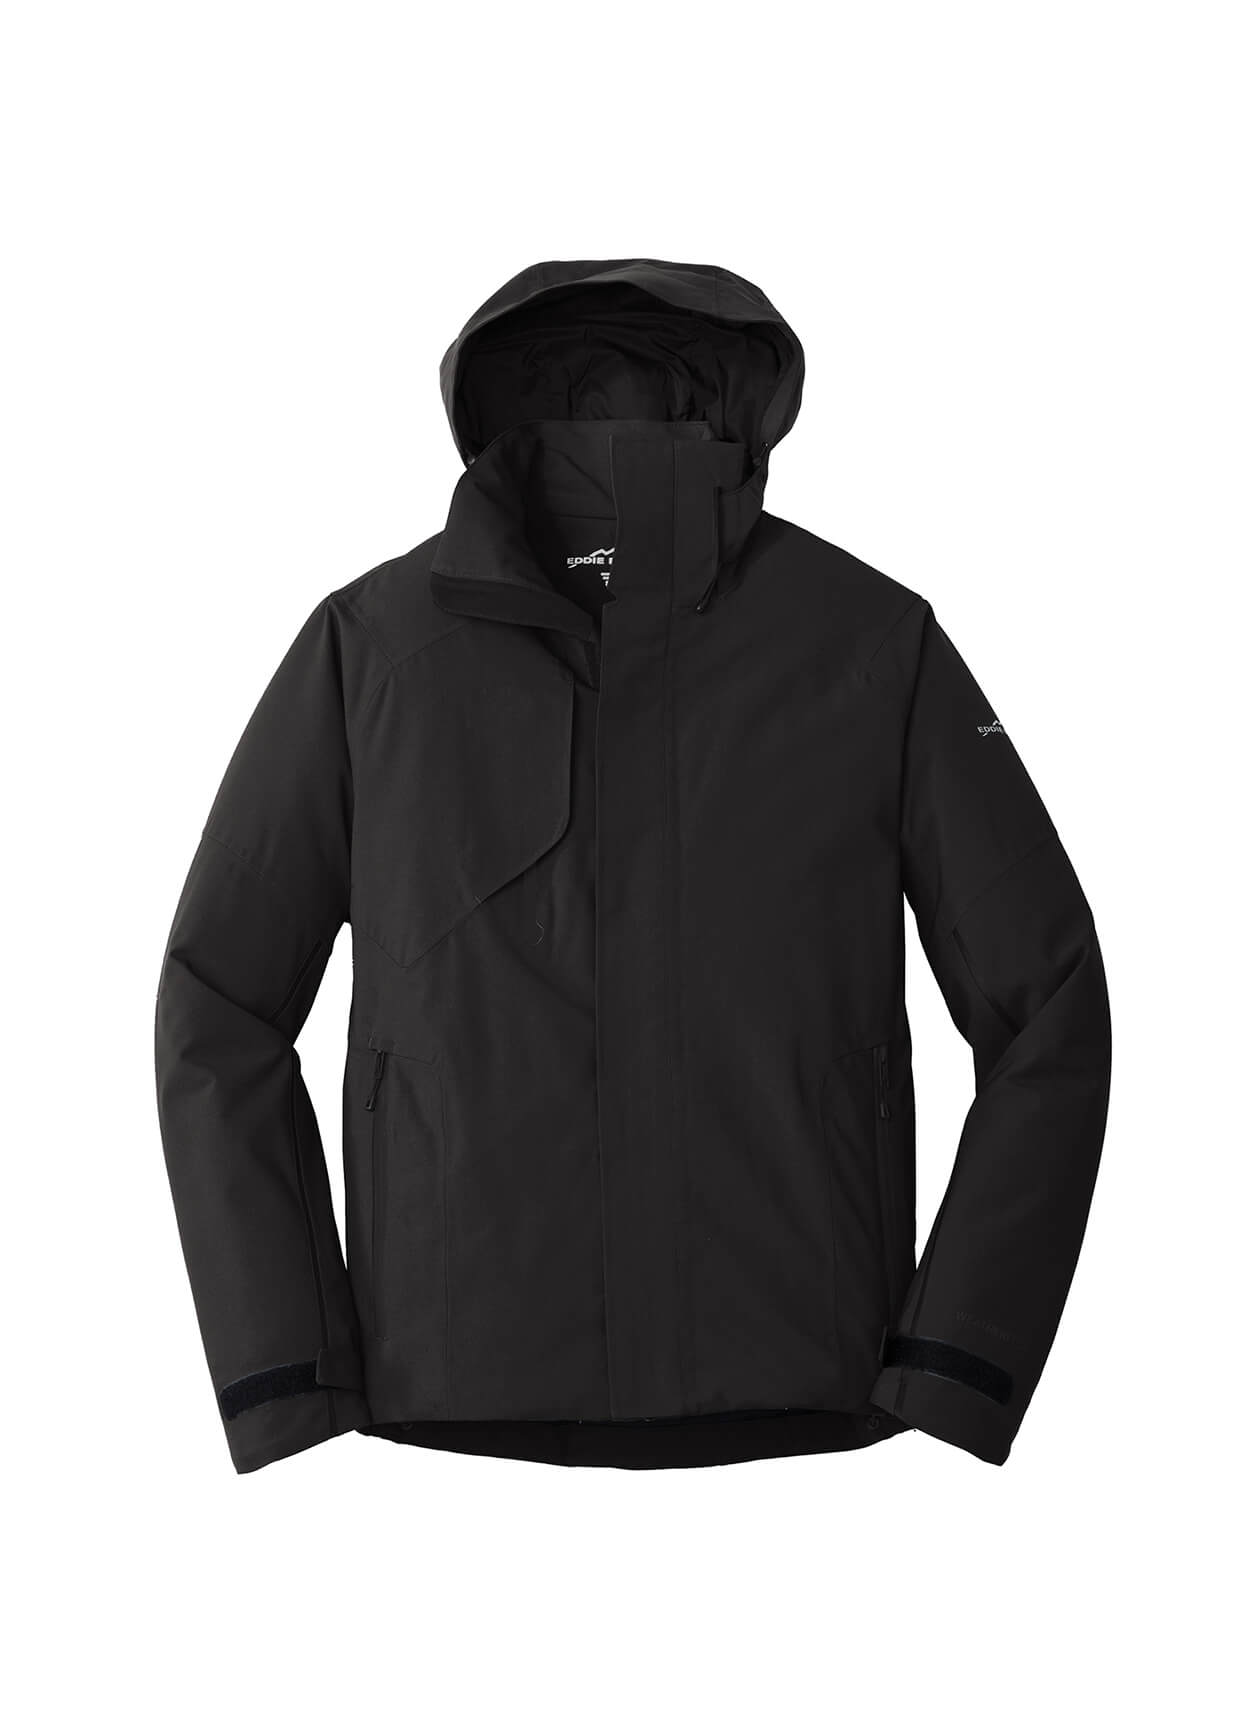 Eddie Bauer Men's Weatheredge Plus Insulated Jacket